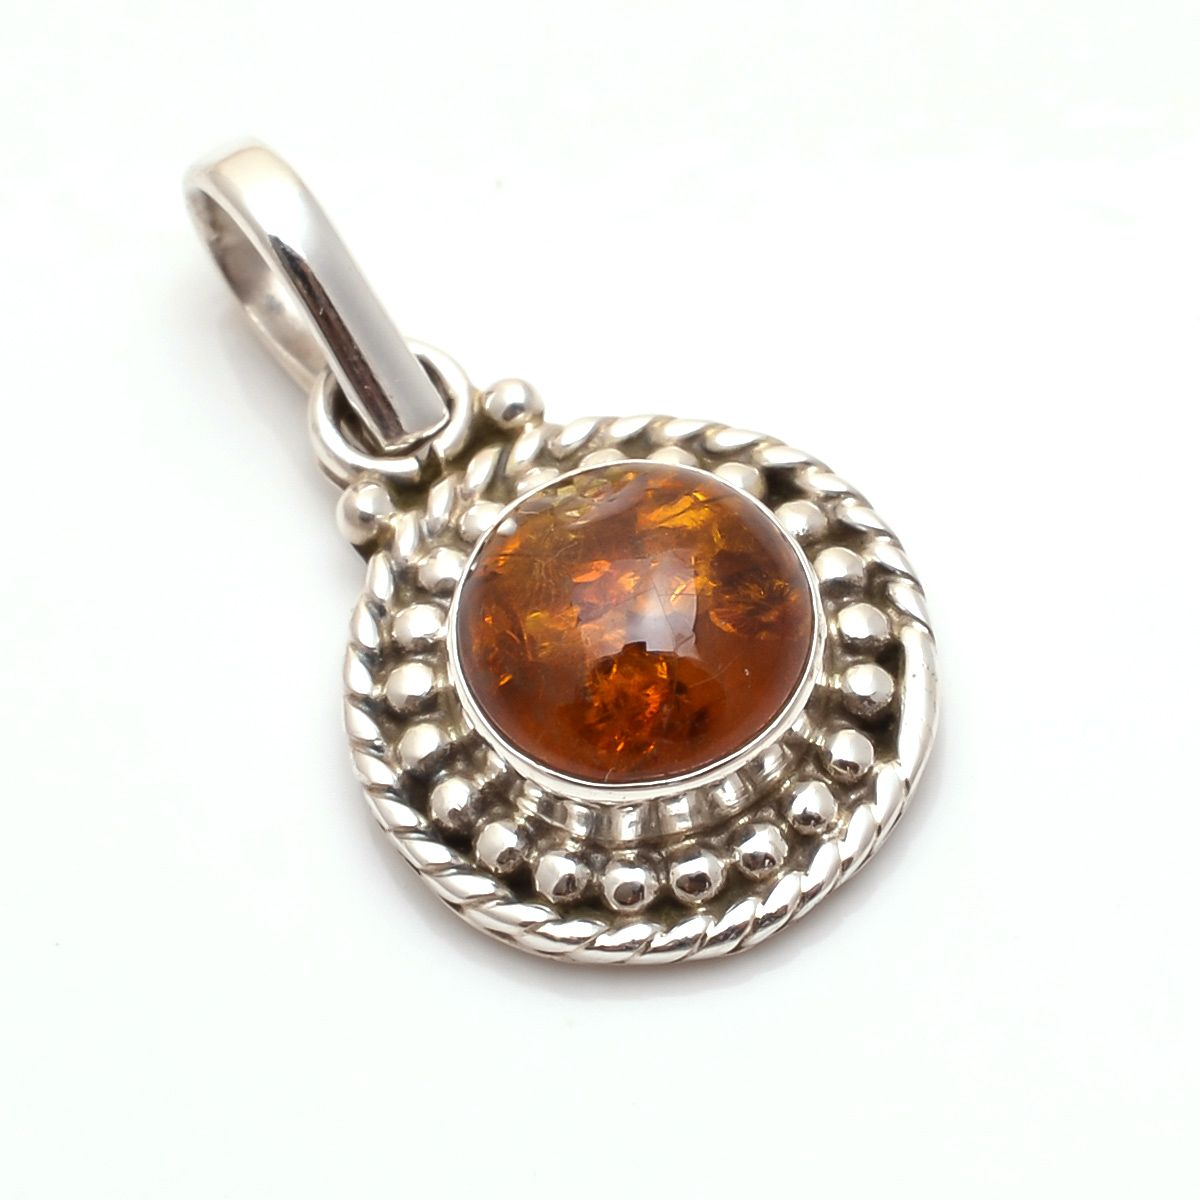 Amber Gemstone 925 Sterling Silver Pendant